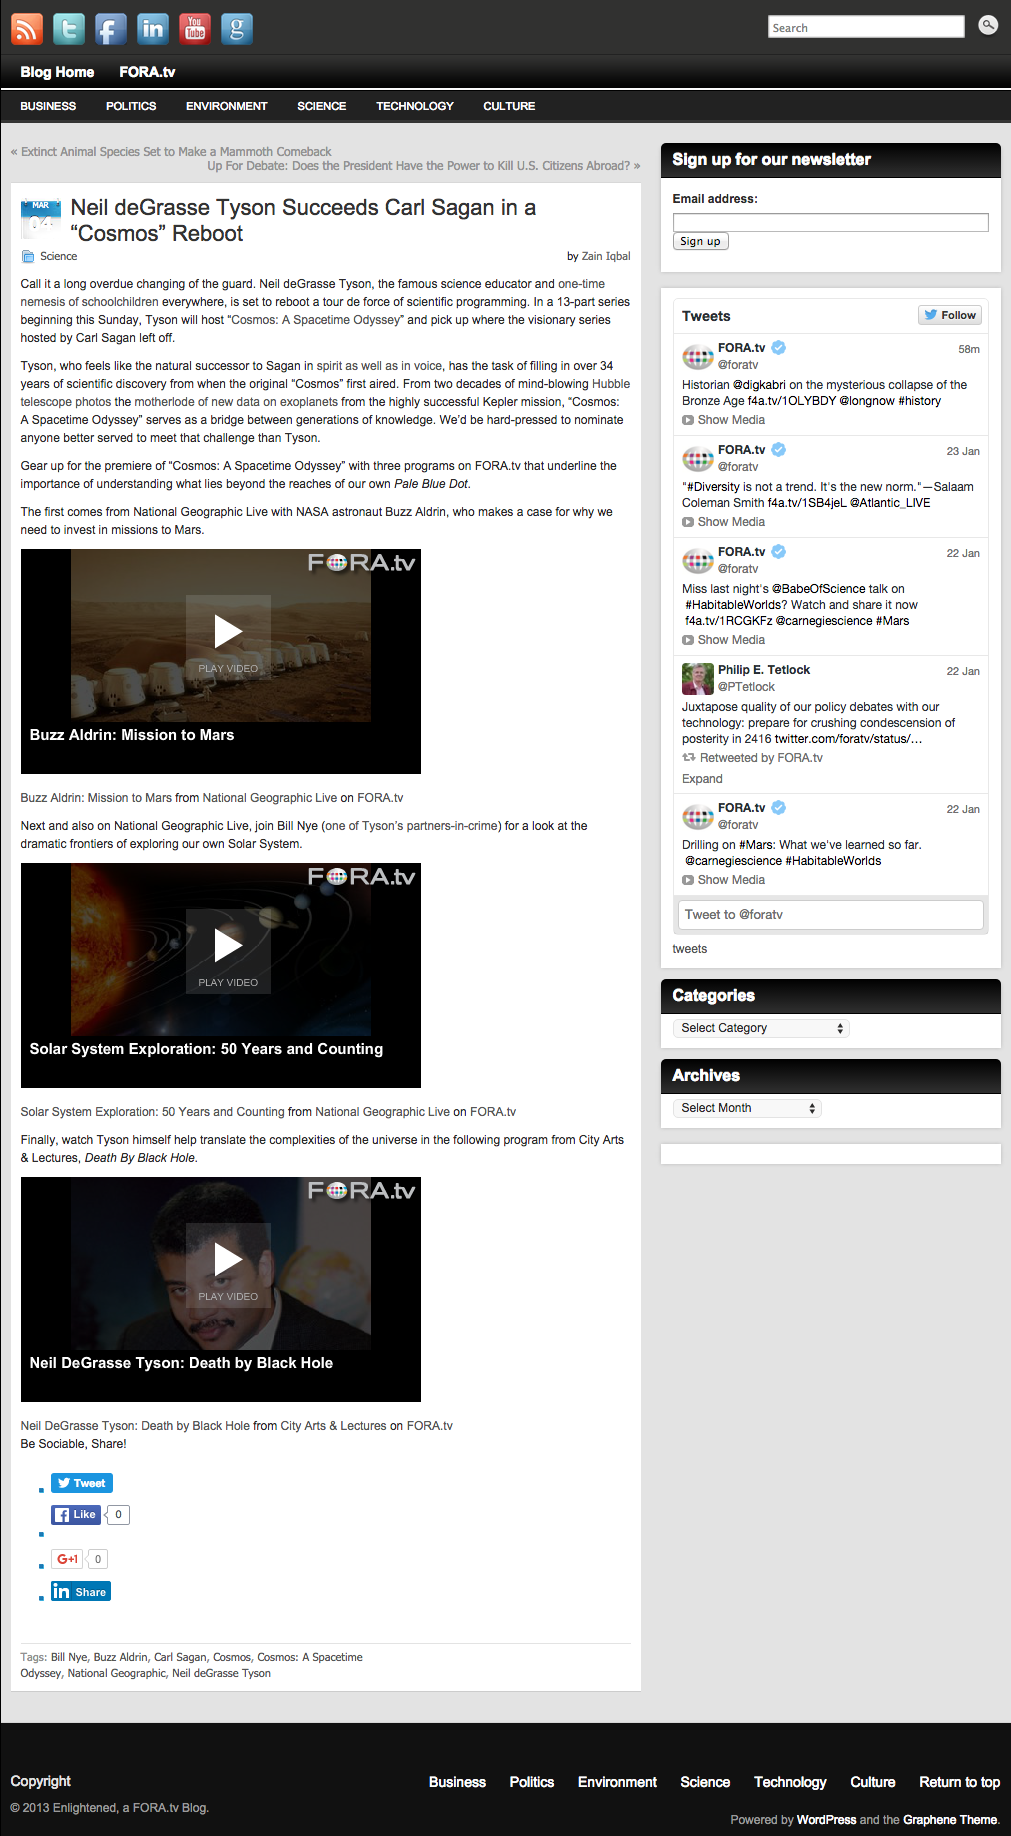 screencapture-enarchive-fora-tv-2014-03-star-destroyers-new-science-emerges-on-black-holes.png